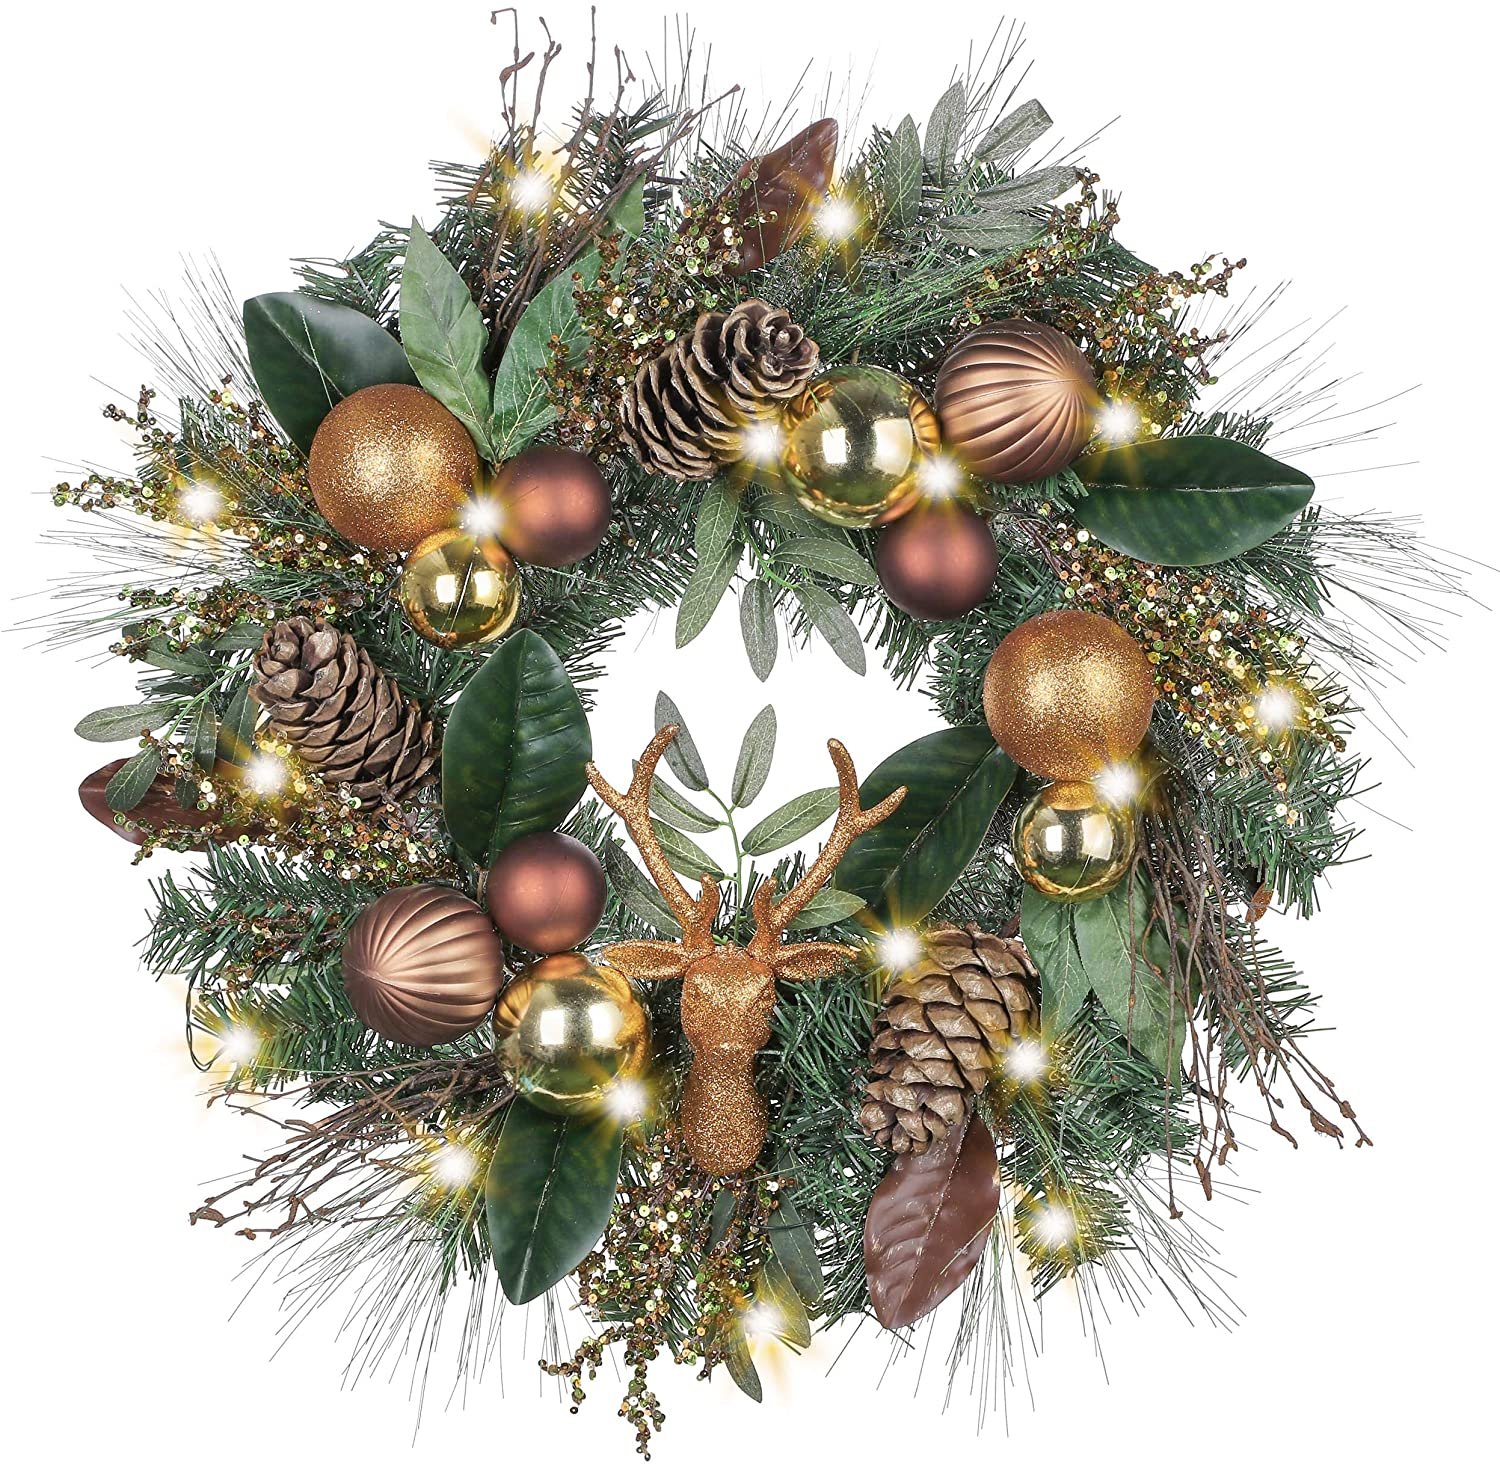 christmas wreath with pine cones, gold ornaments, and gold artificial deer head